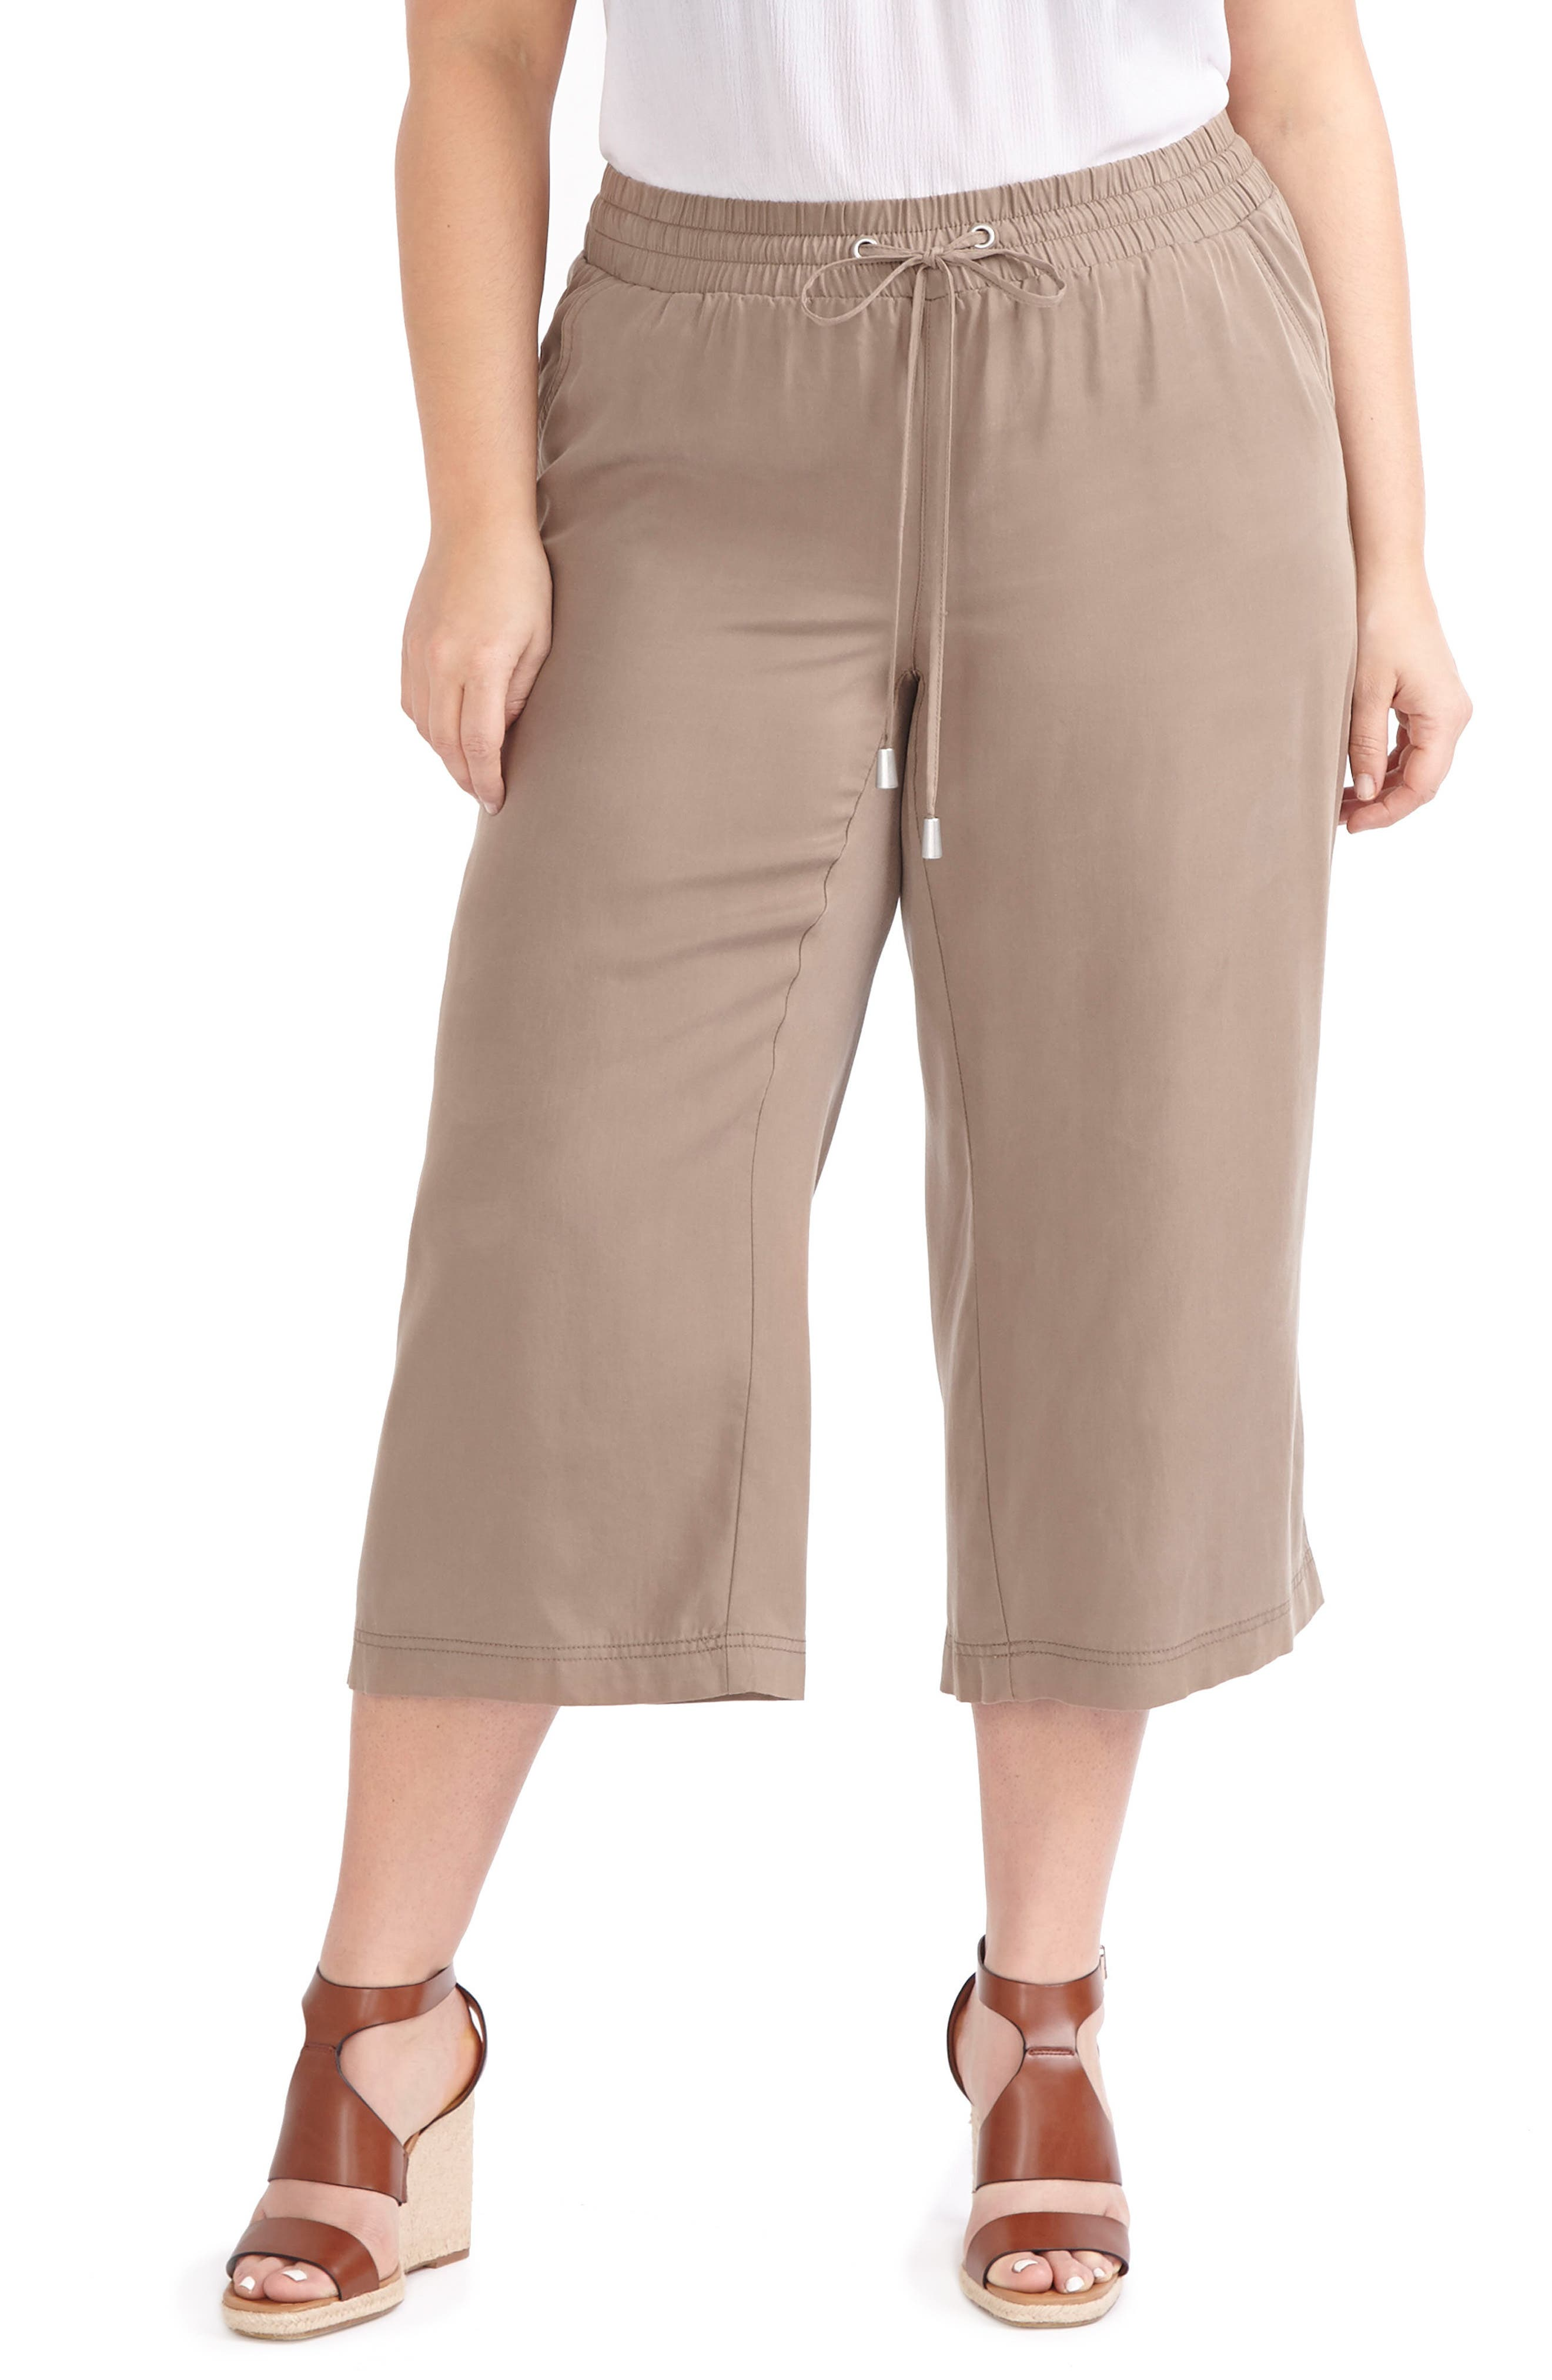 ADDITION ELLE LOVE AND LEGEND Wide Leg Capri Pants (Plus Size)